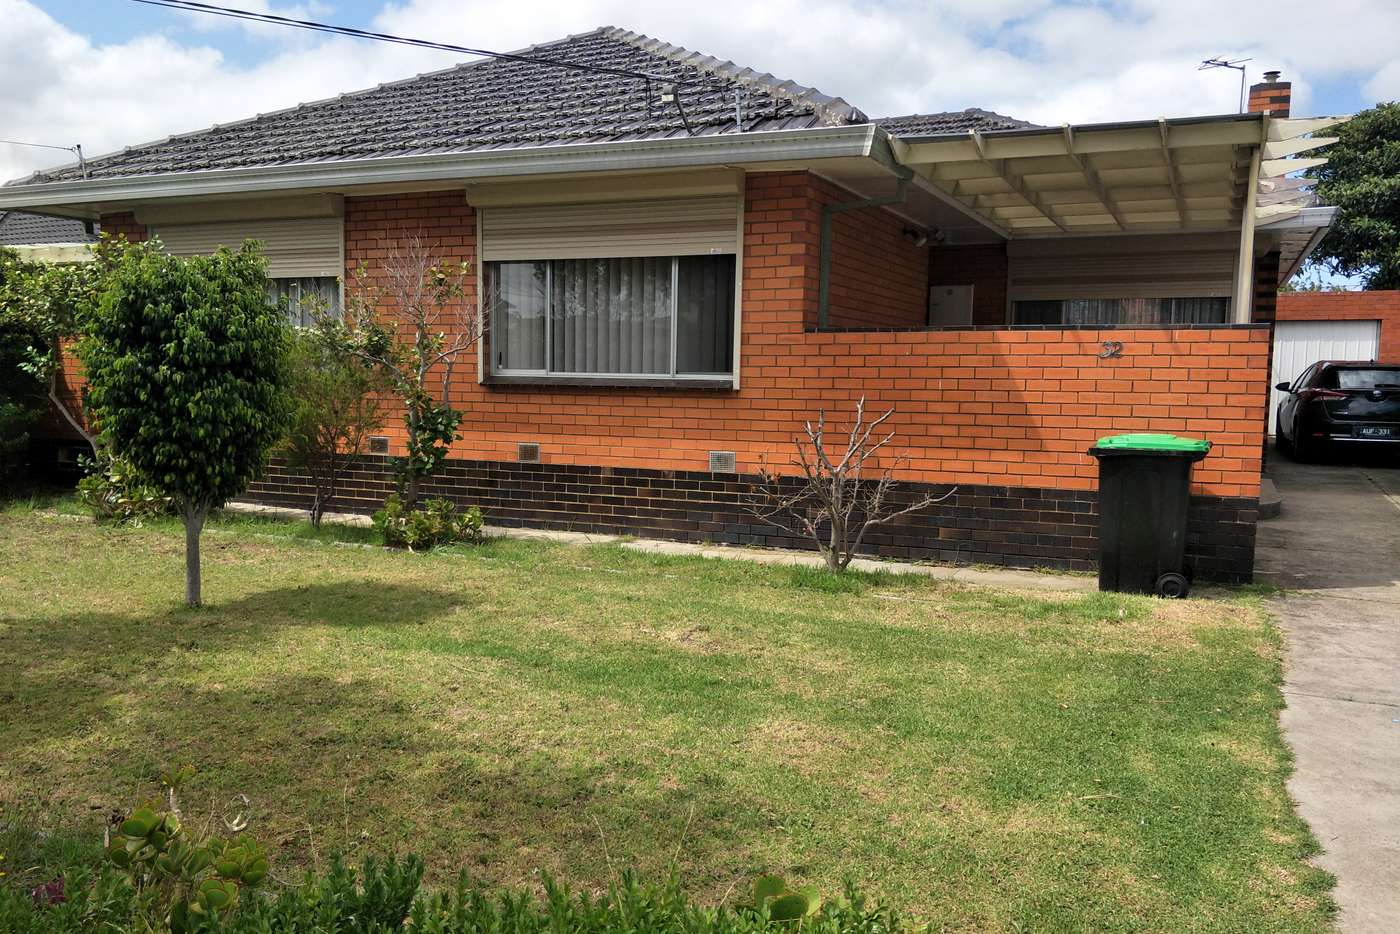 Main view of Homely house listing, 32 Heather Grove, Springvale VIC 3171